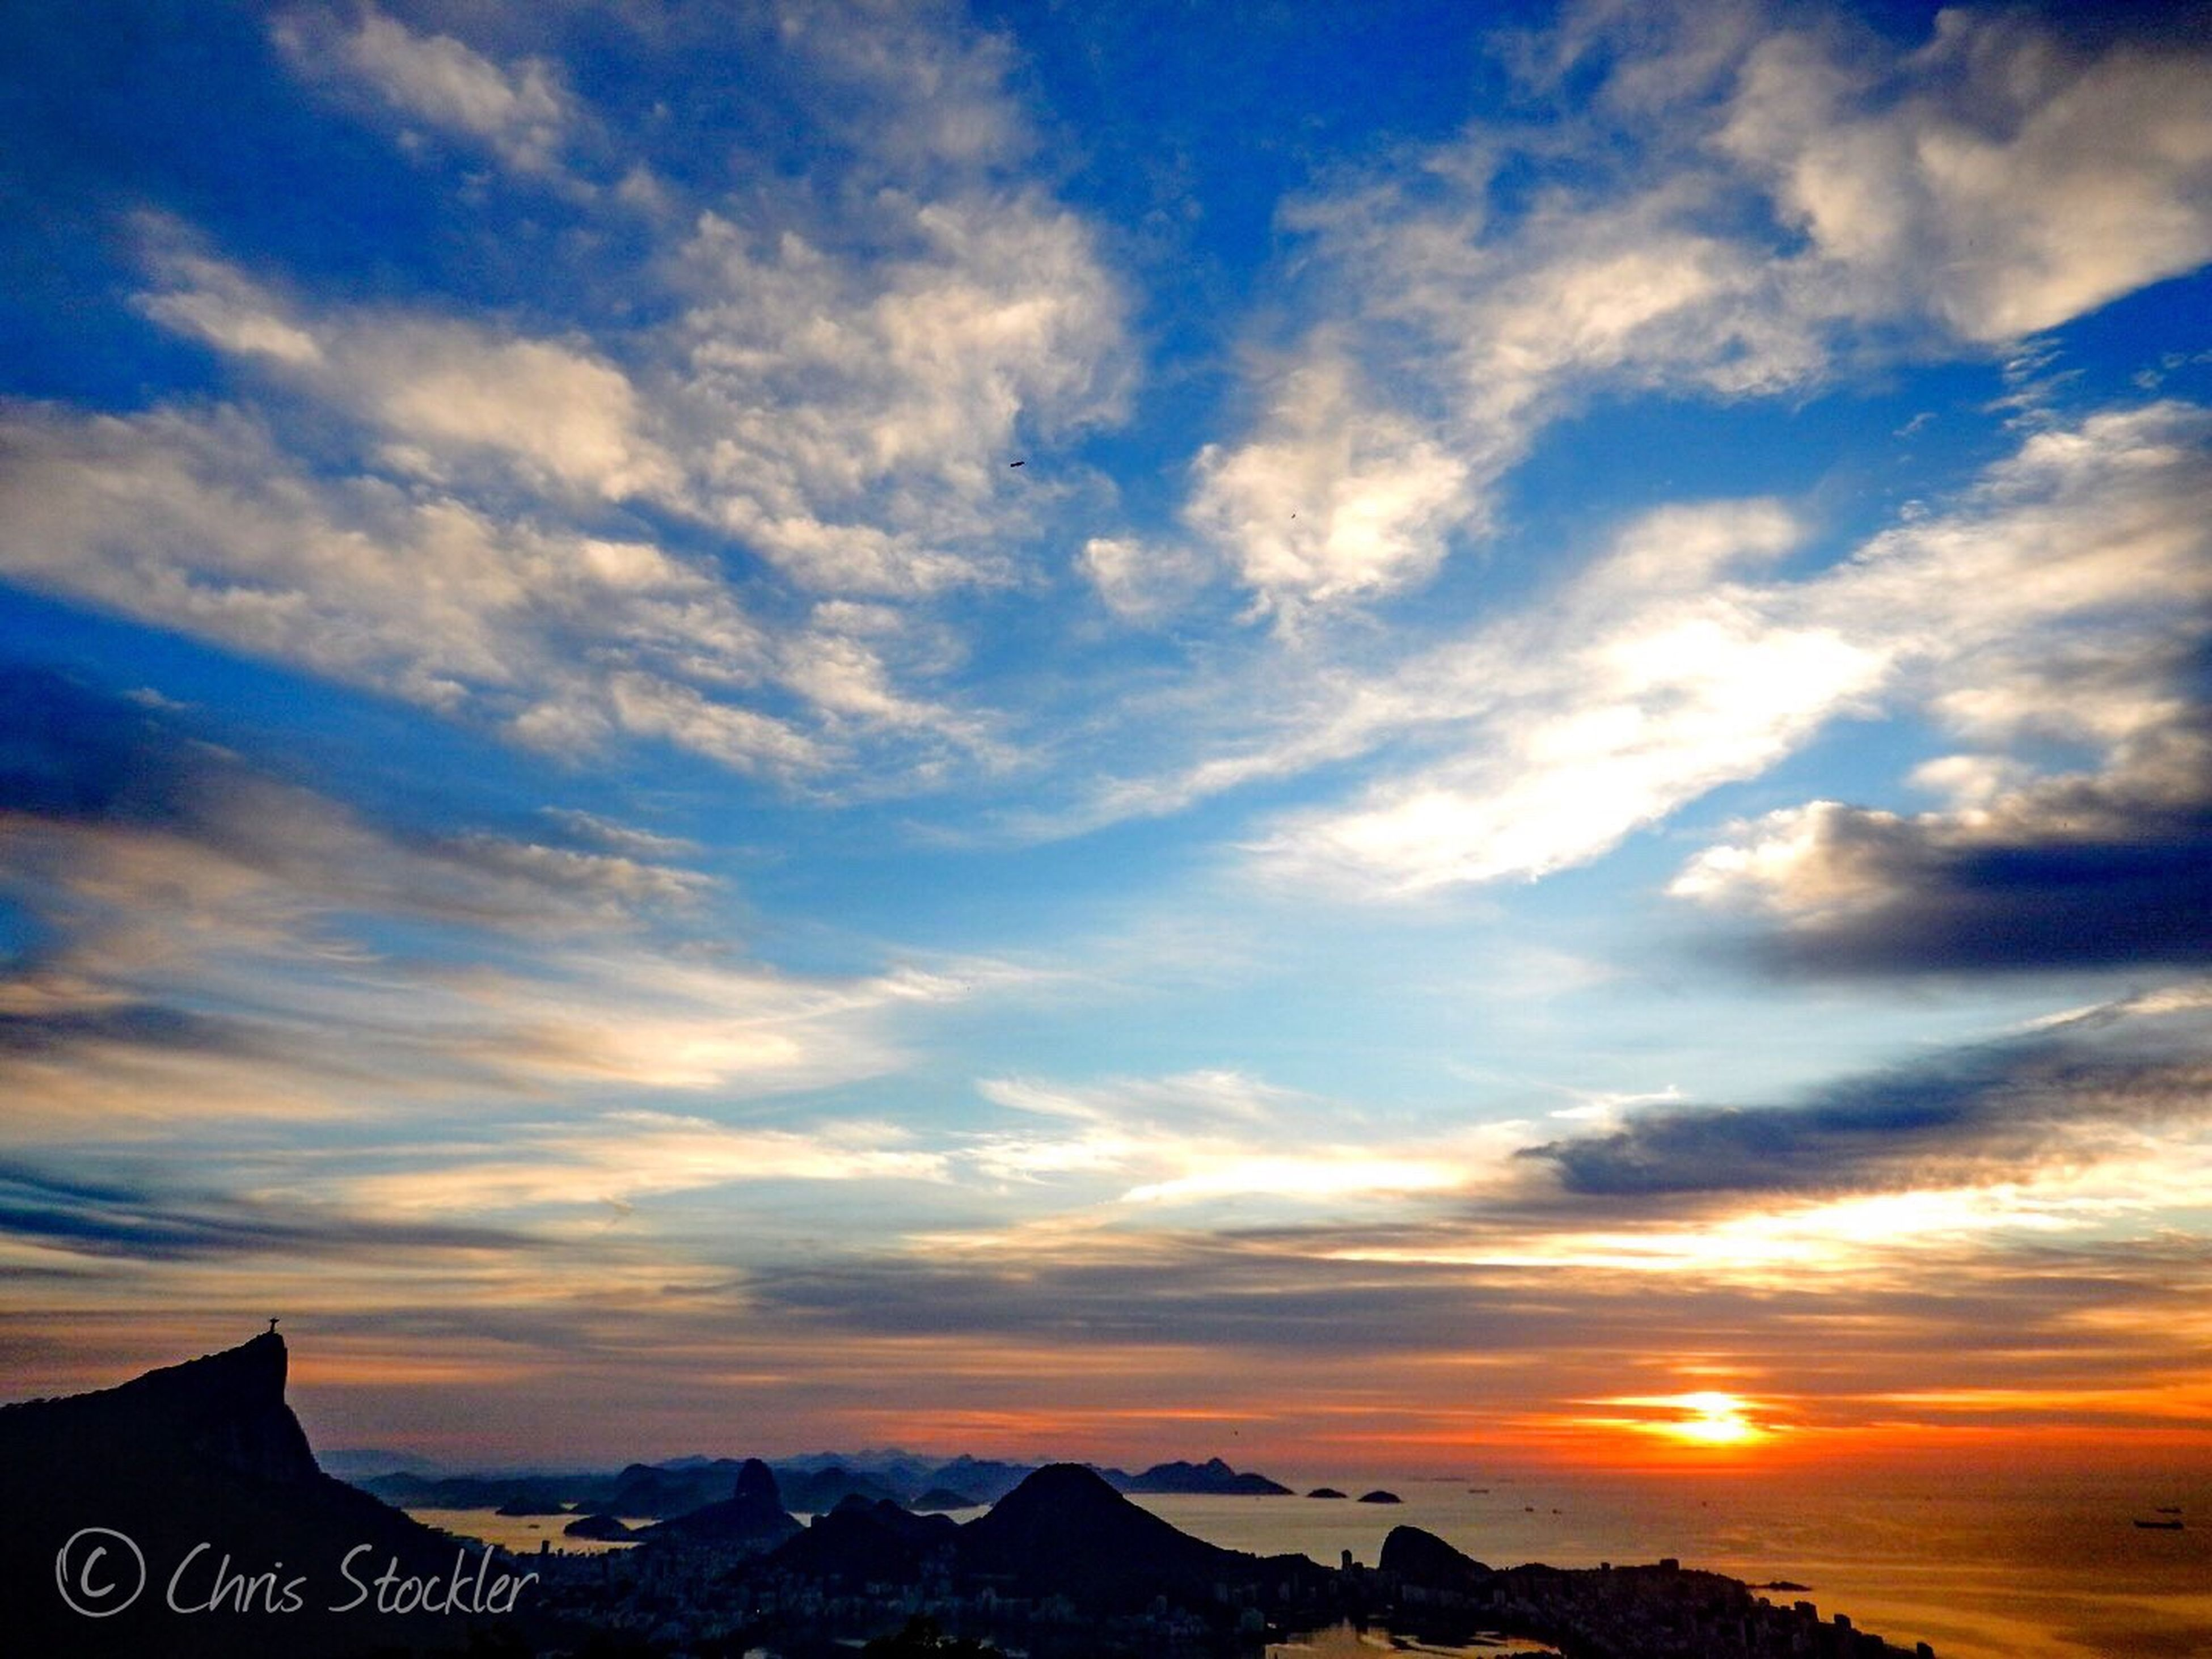 scenics, sky, sunset, beauty in nature, tranquil scene, tranquility, cloud - sky, nature, cloud, idyllic, mountain, orange color, cloudscape, majestic, cloudy, sea, dramatic sky, water, outdoors, non-urban scene